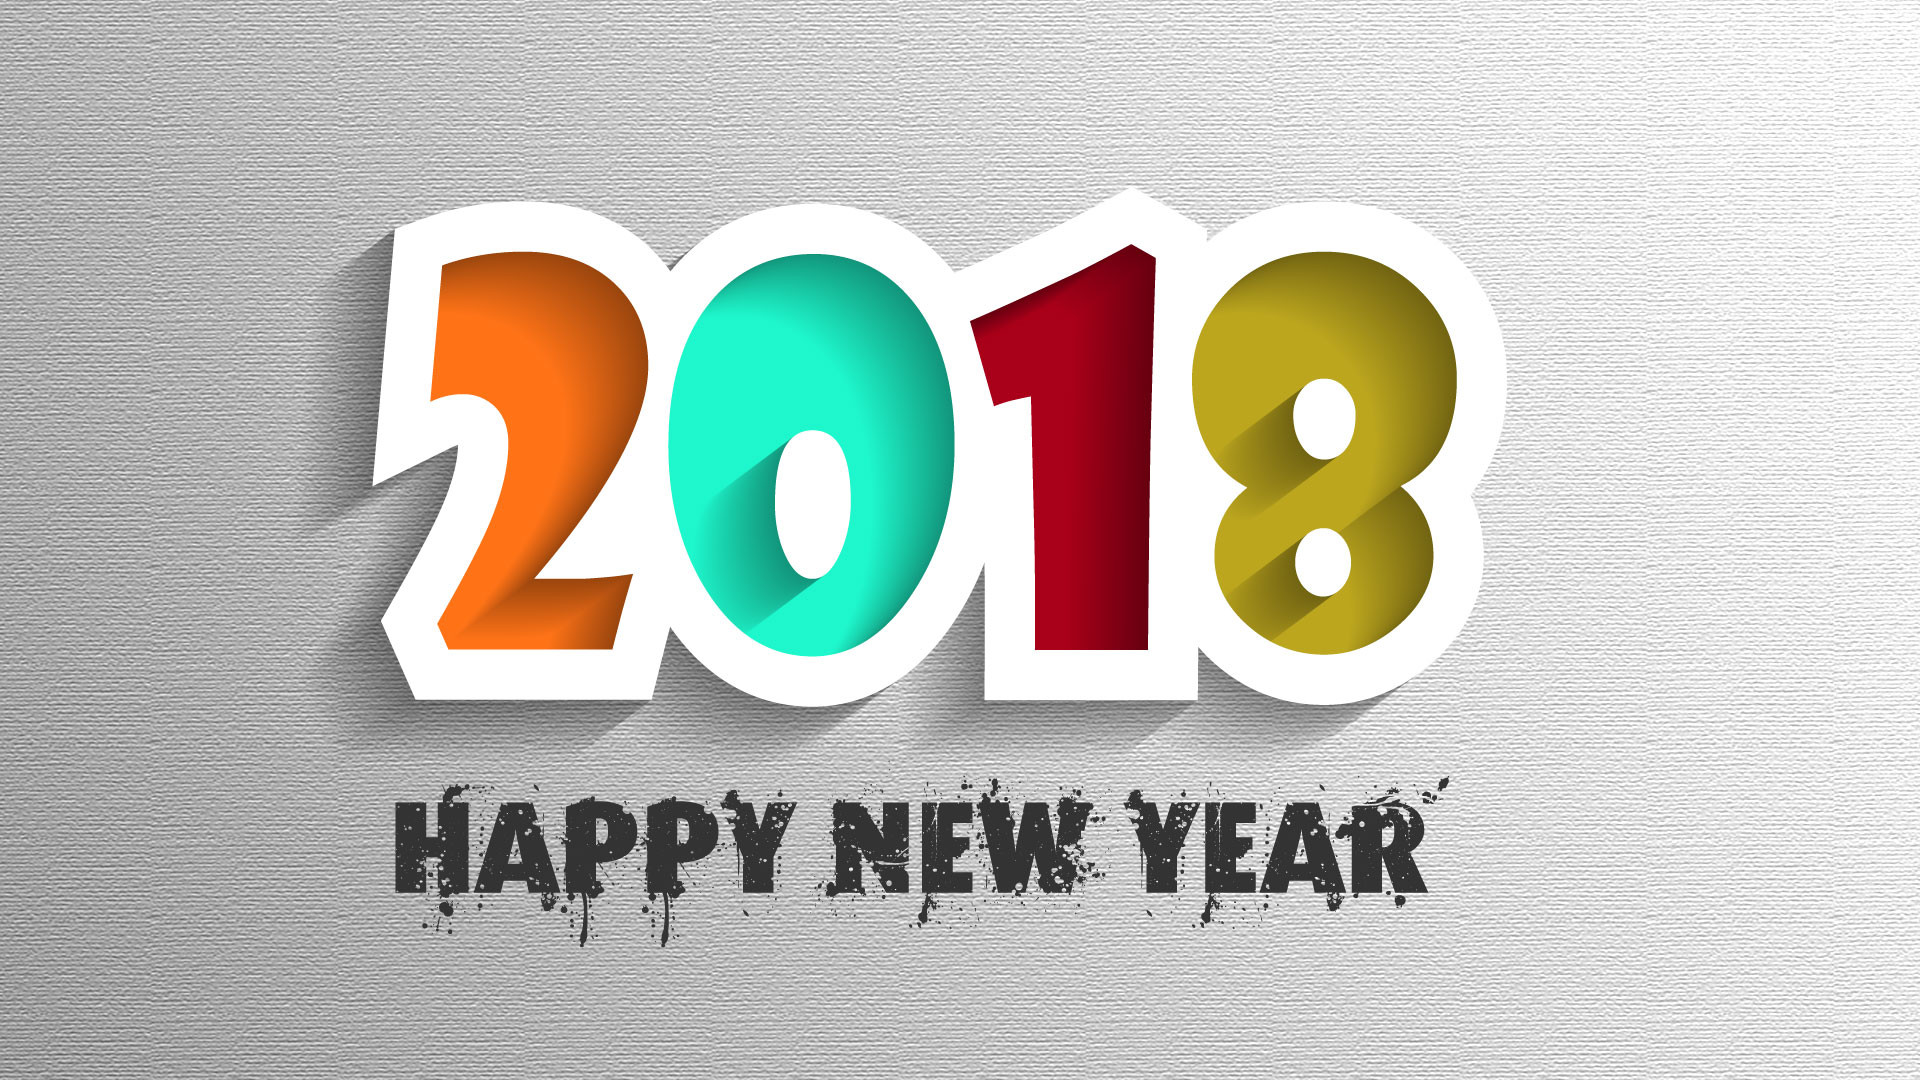 1920x1080 2018 happy new year desktop wallpaper 62291 download merry